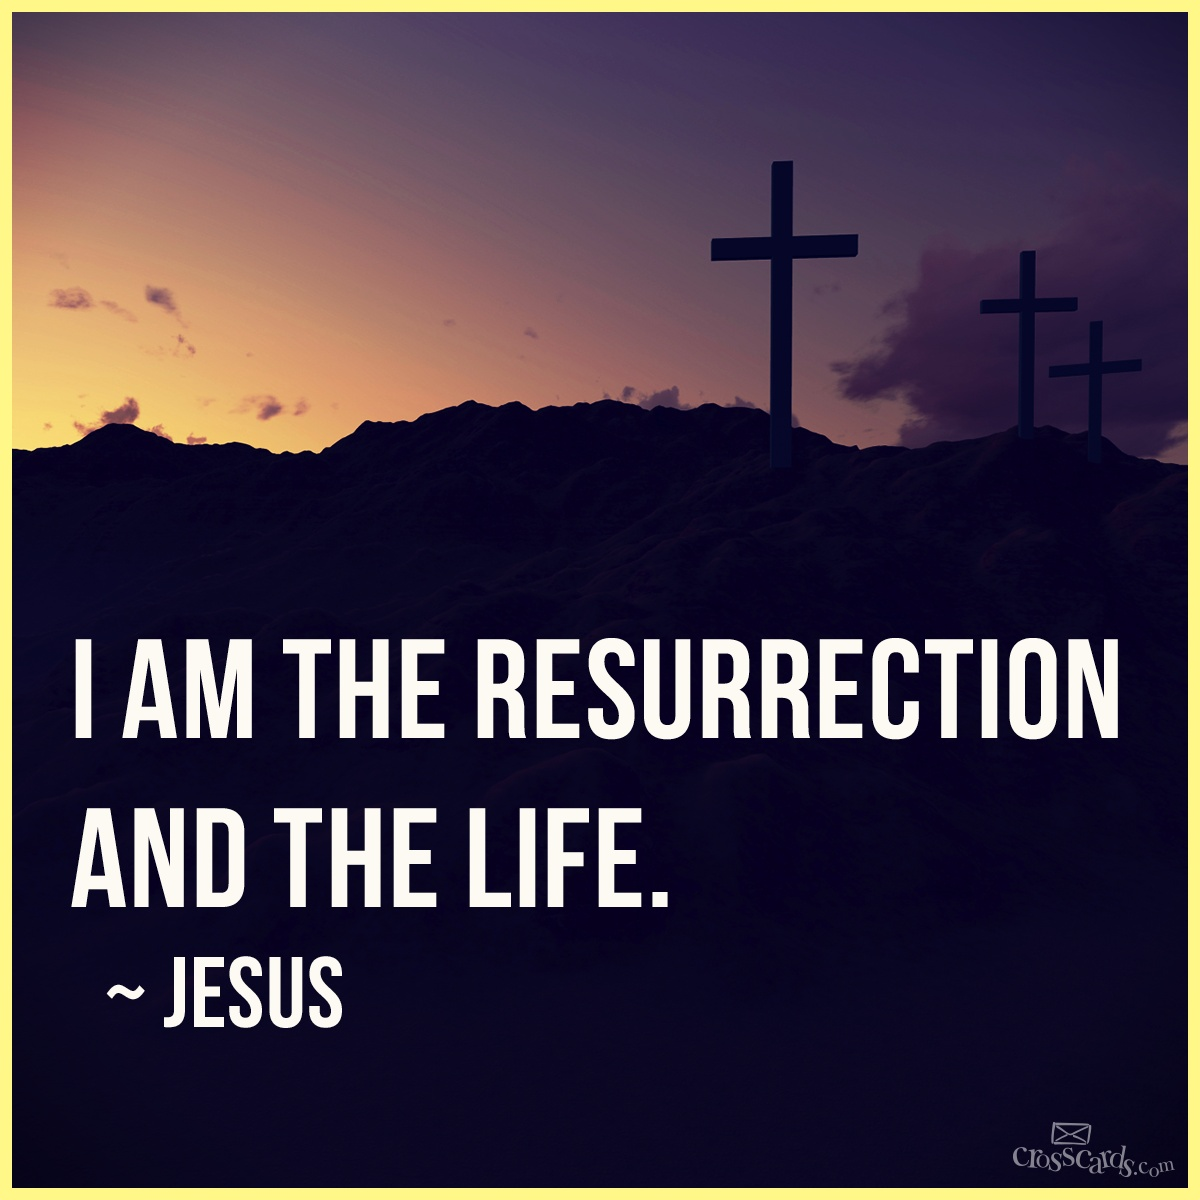 9760-ea_resurrection_life Jesus design.png